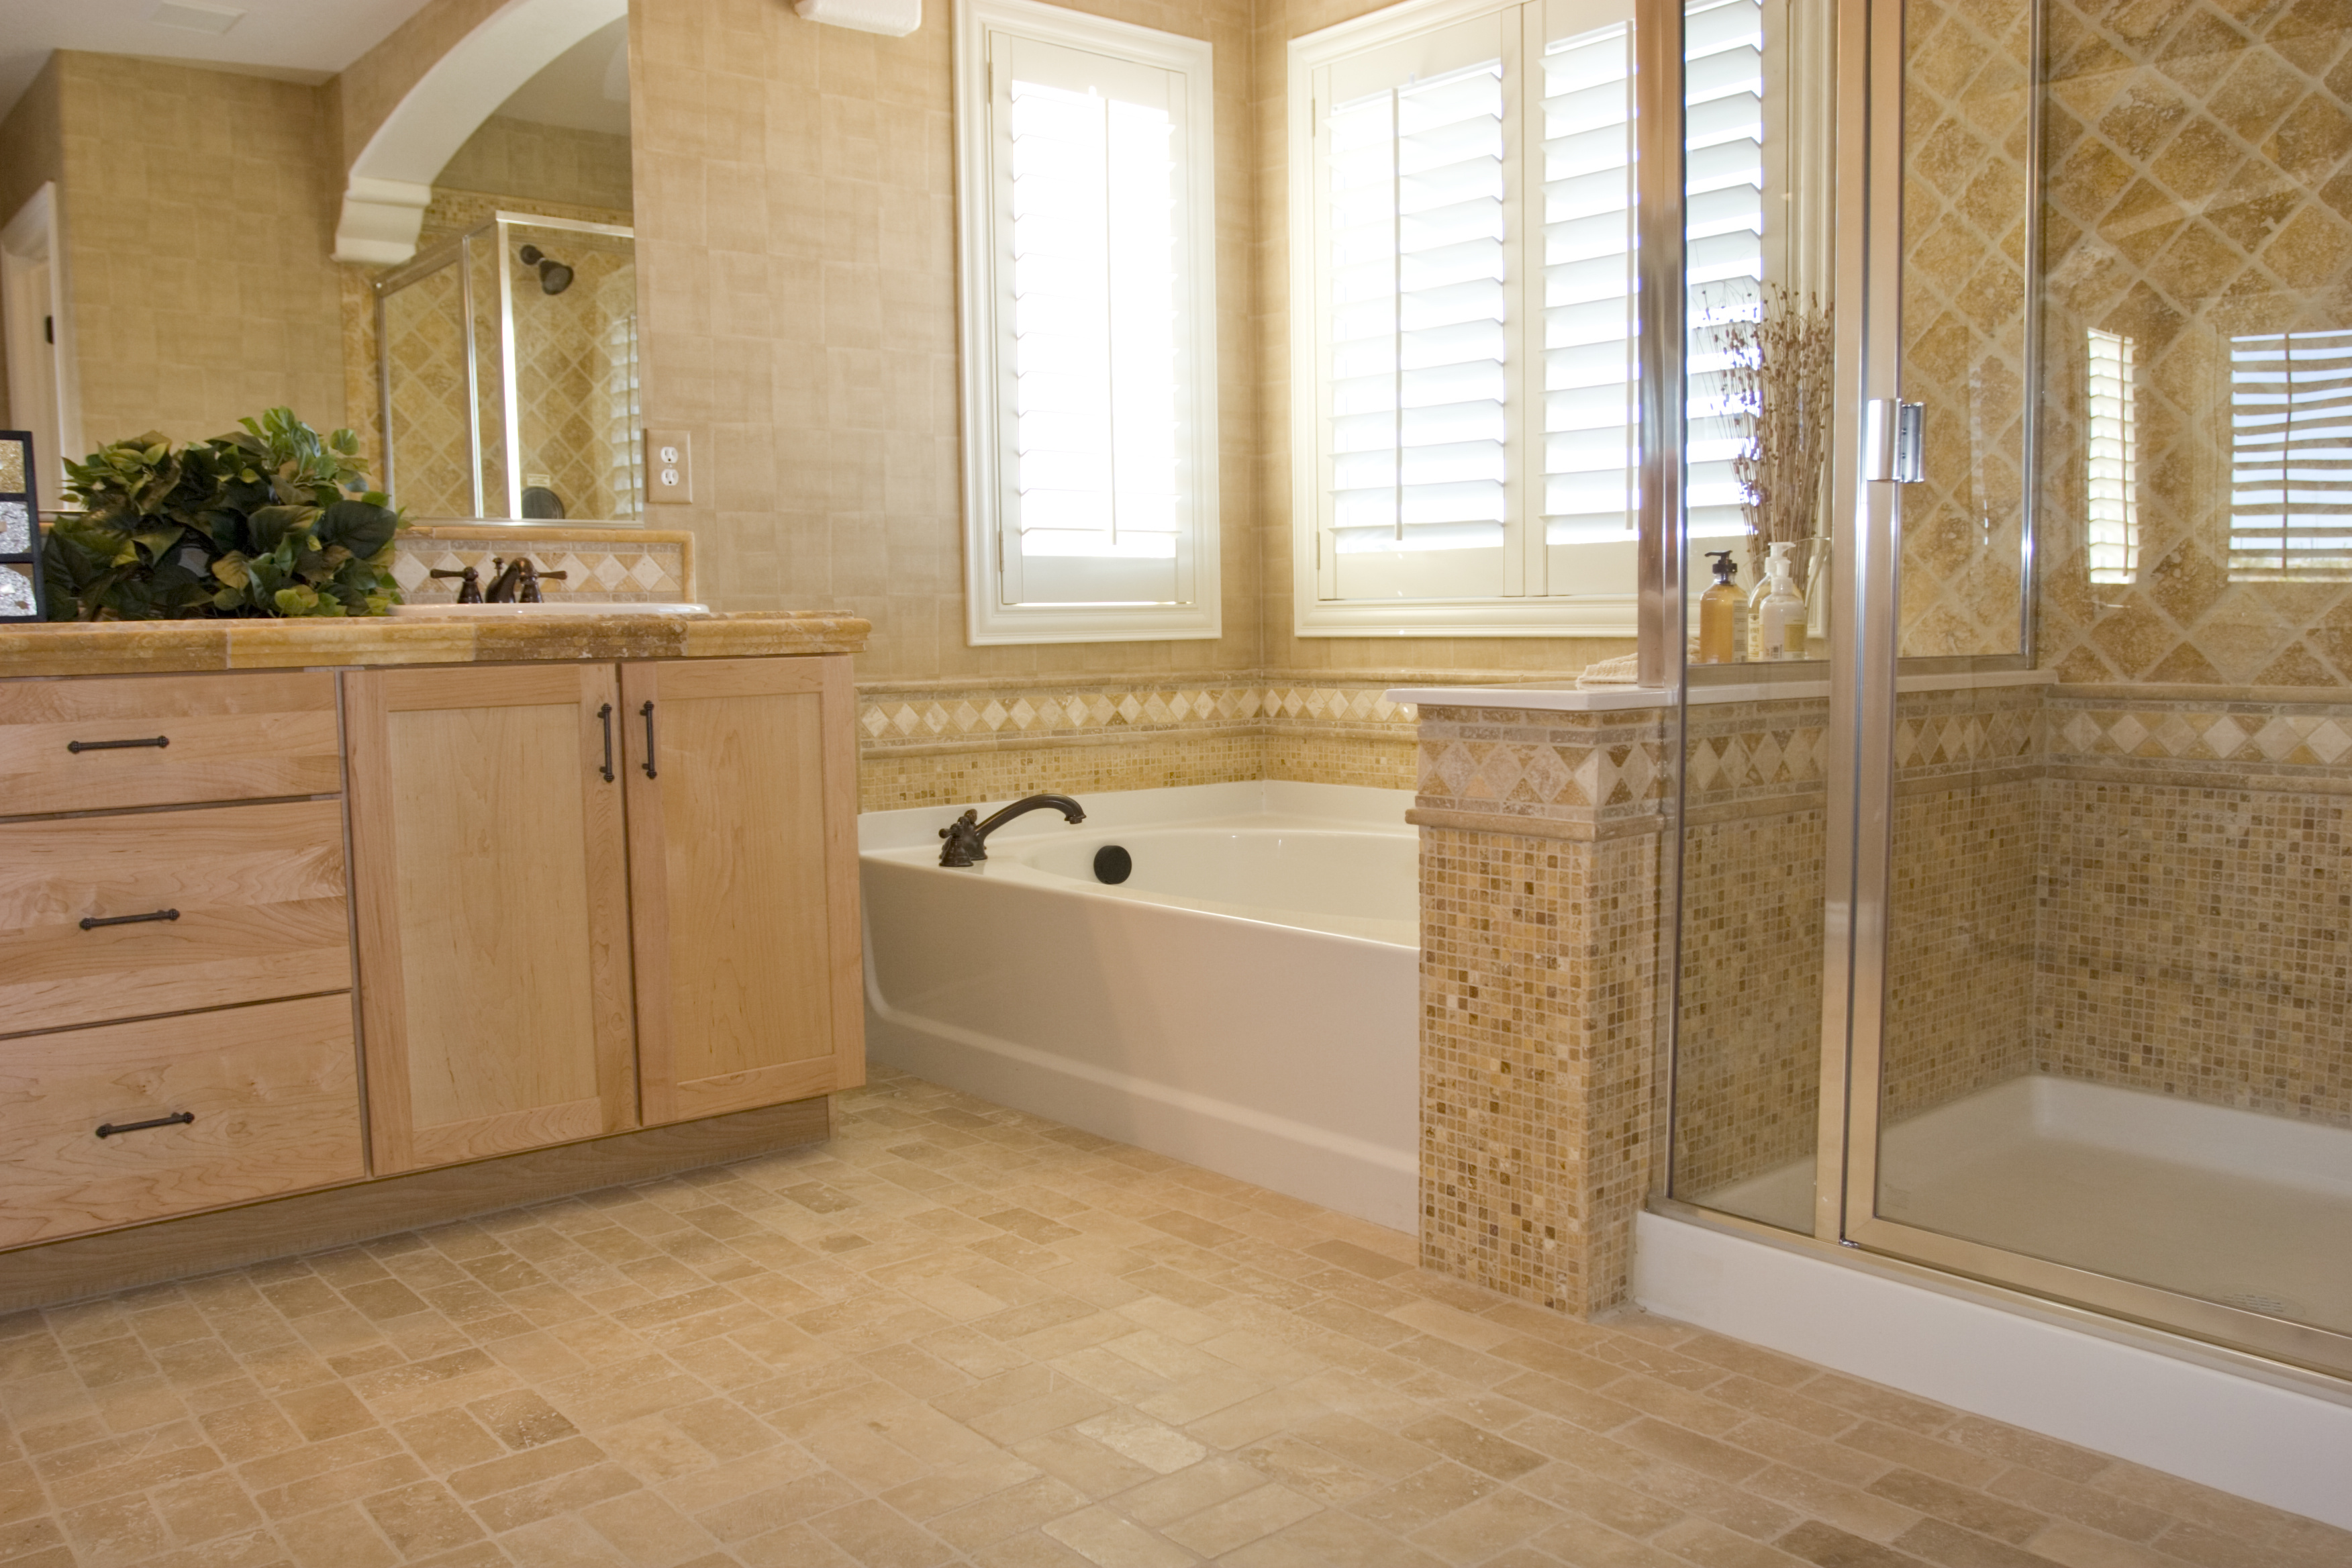 Bathroom Remodeling St Louis Upscale Bathroom Remodel  St Louis Bathroom Remodeling Experts